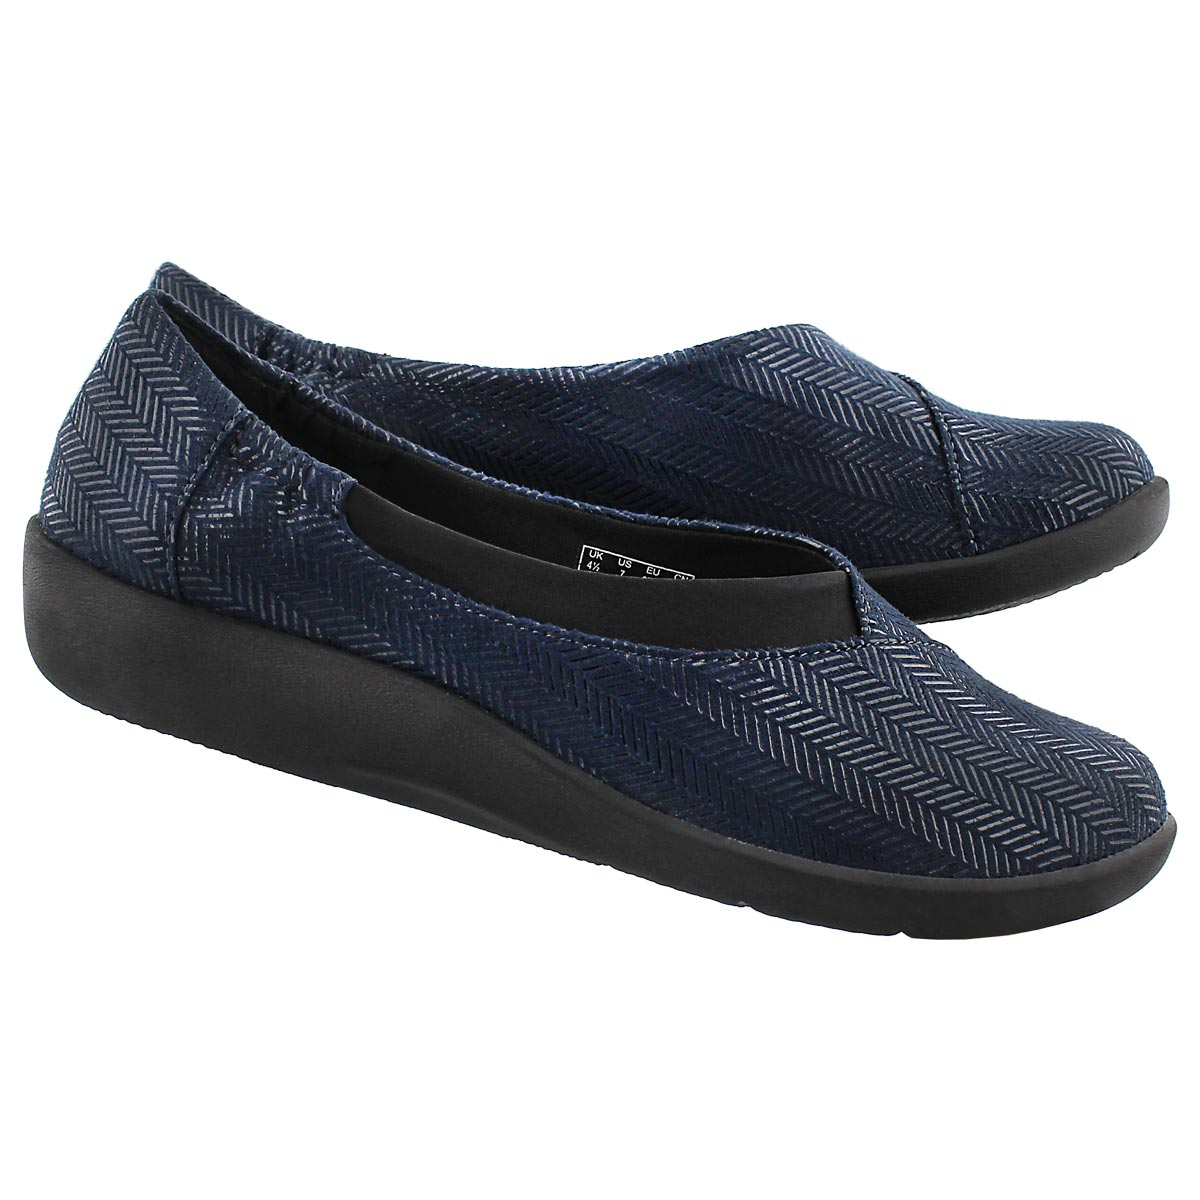 Lds Sillian Jetay navy casual slip on